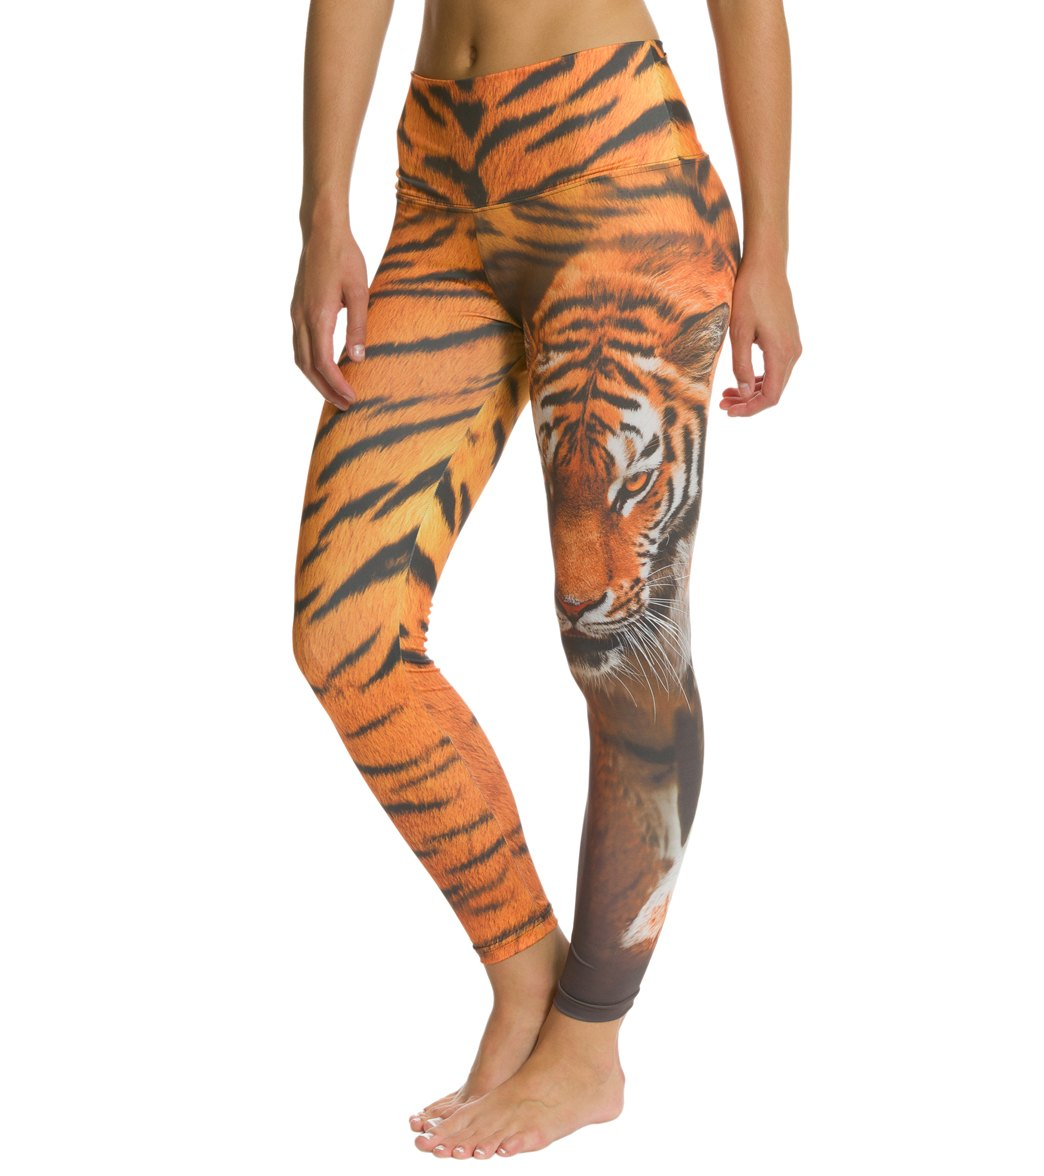 Om Shanti Clothing Tiger Half Skin Yoga Leggings-featured_image